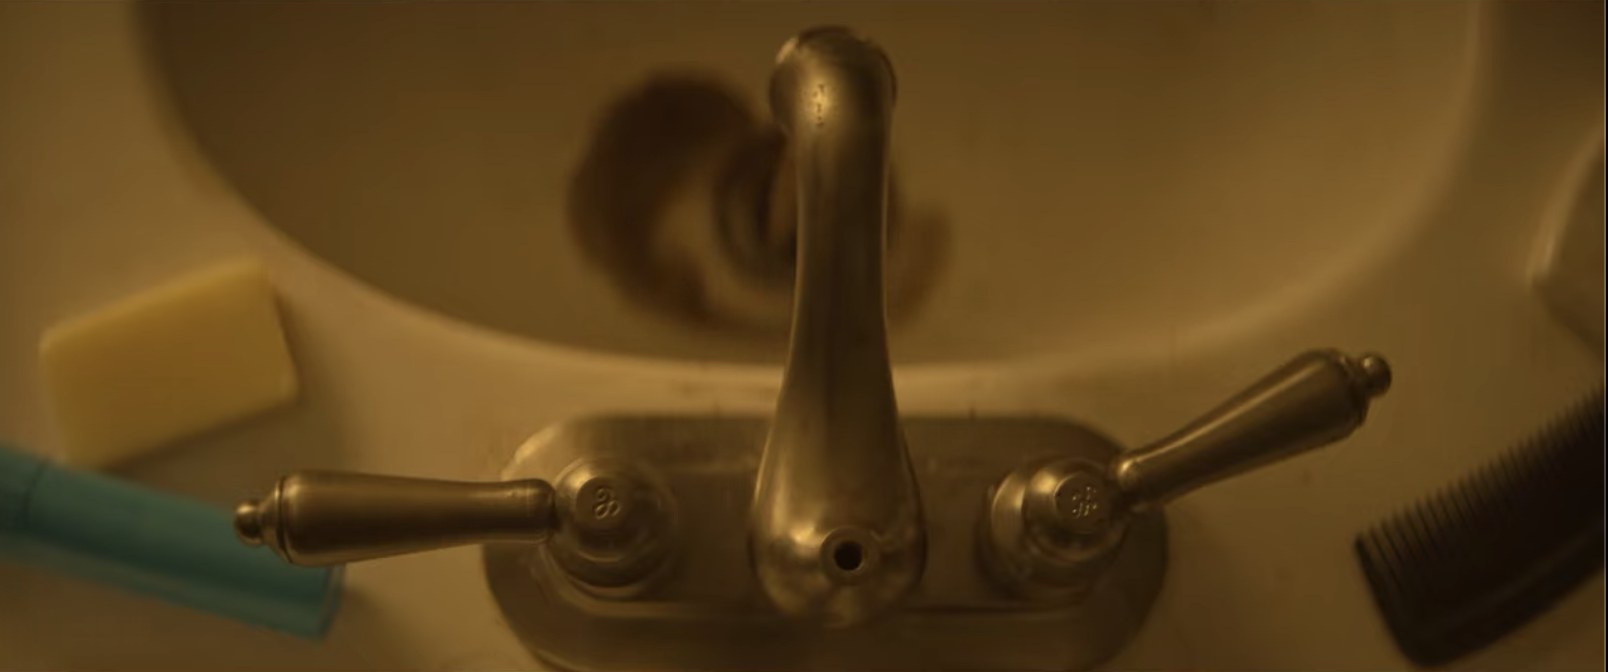 Brownish water spewing from a bathroom faucet